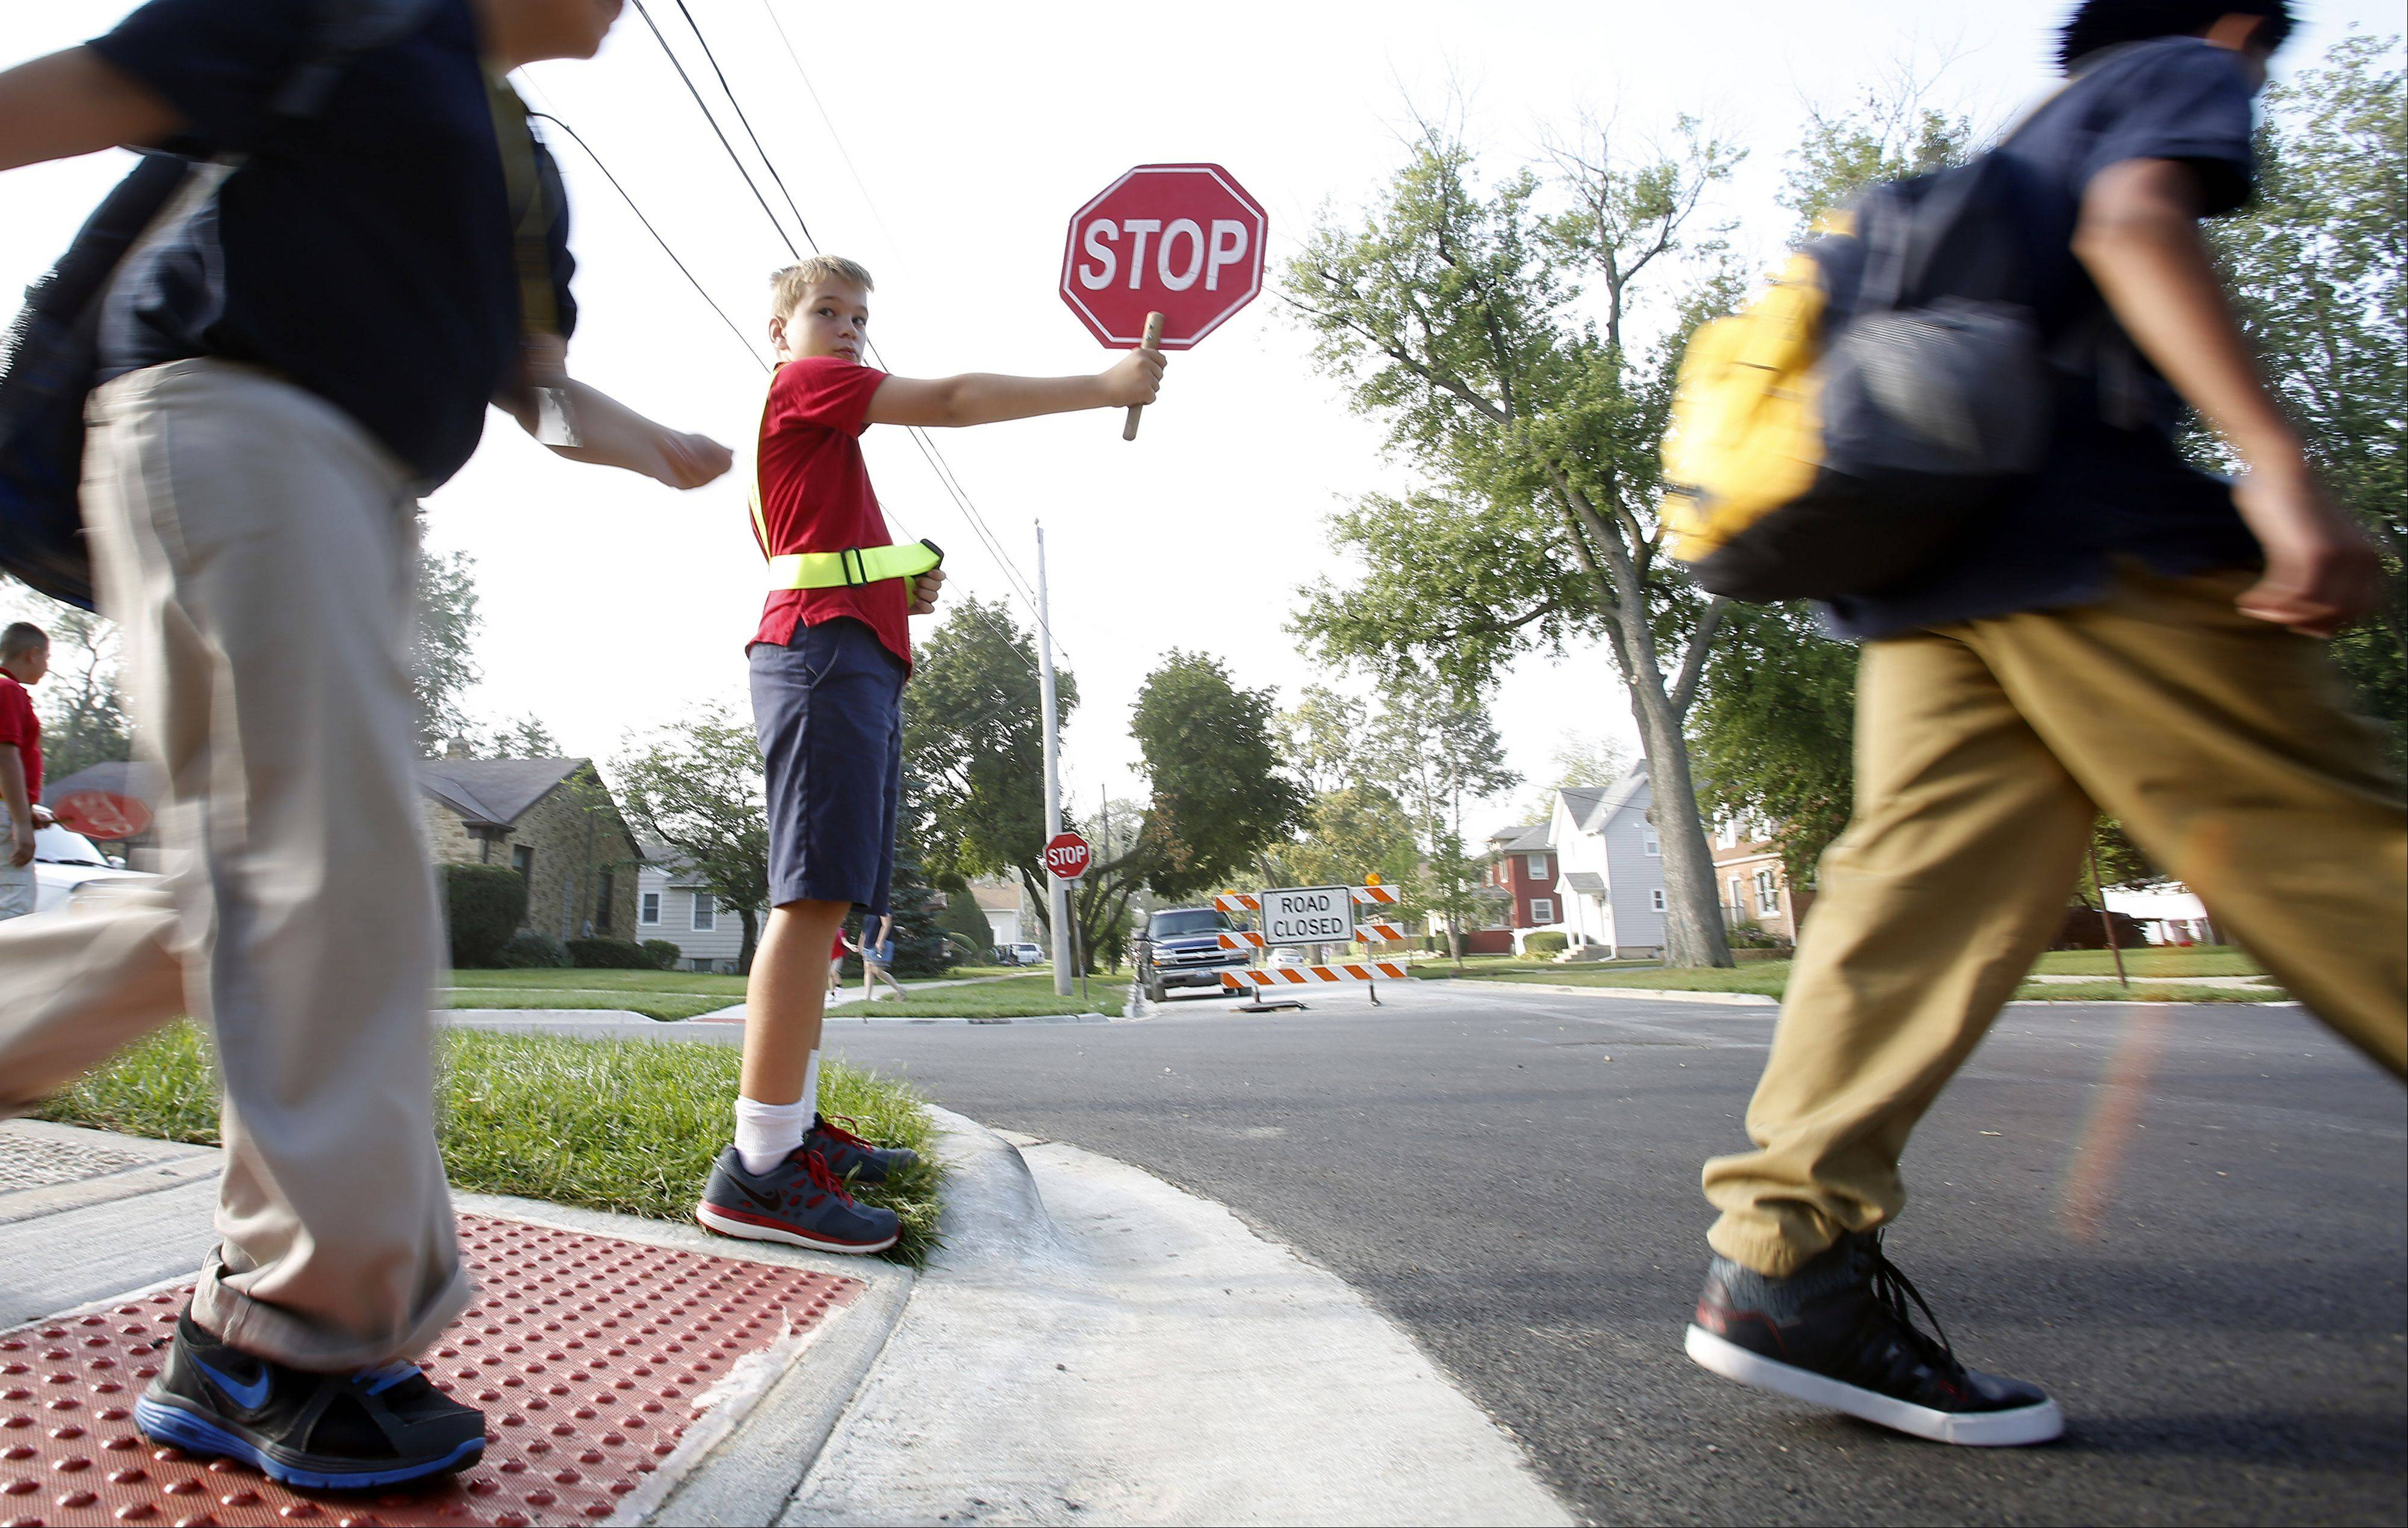 Jakob Scham, 10, volunteers as a crossing guard before school, and his mom says that he has really blossomed since he switched from private school to Washington, though the Elgin school has been identified for federal restructuring because of poor performance.